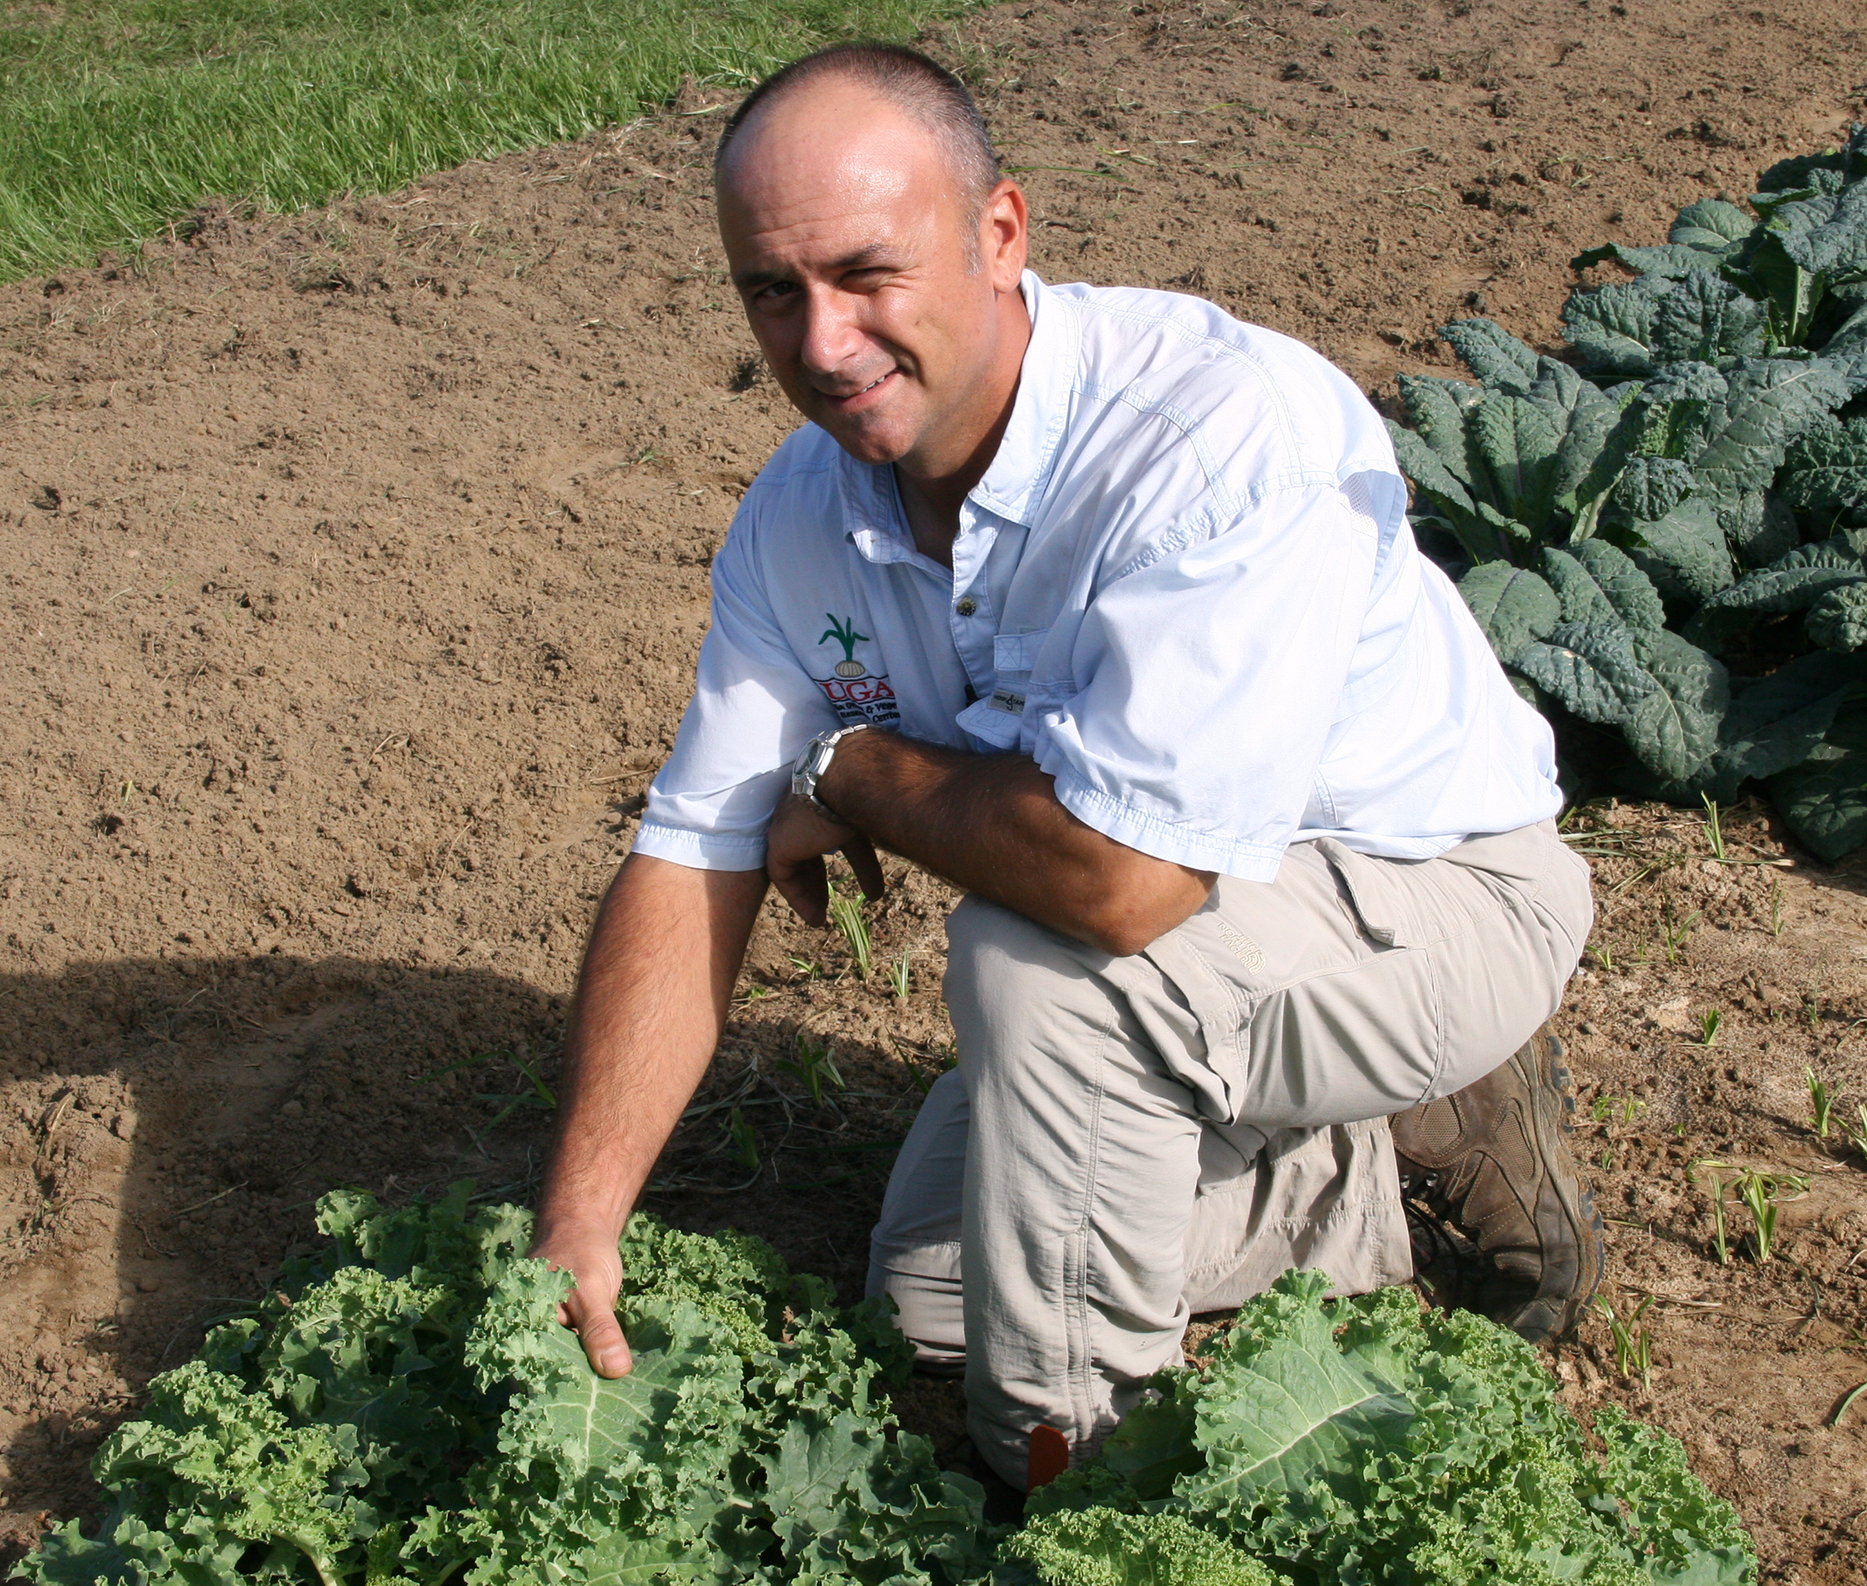 UGA horticulturist Tim Coolong poses for a picture alongside some of the kale he is researching on the UGA Tifton Campus.